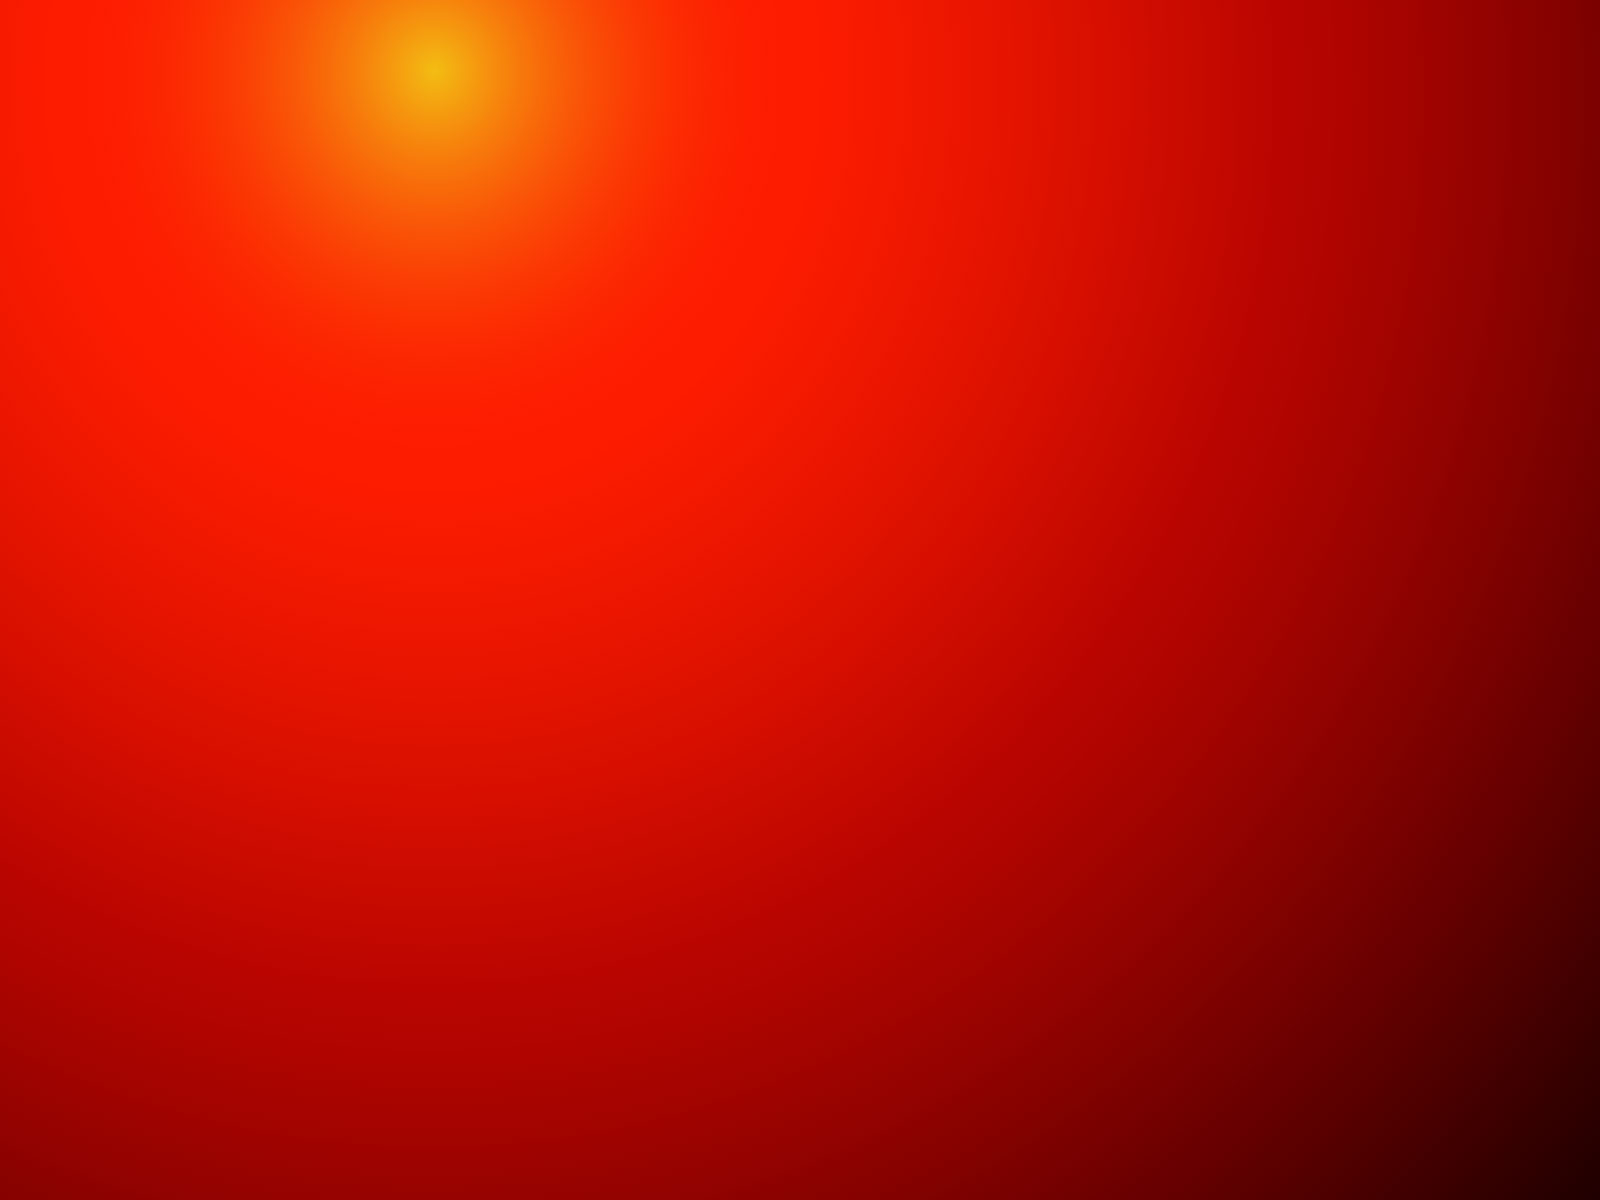 Wallpaper Background Gallery: Pictures Of Red Backgrounds